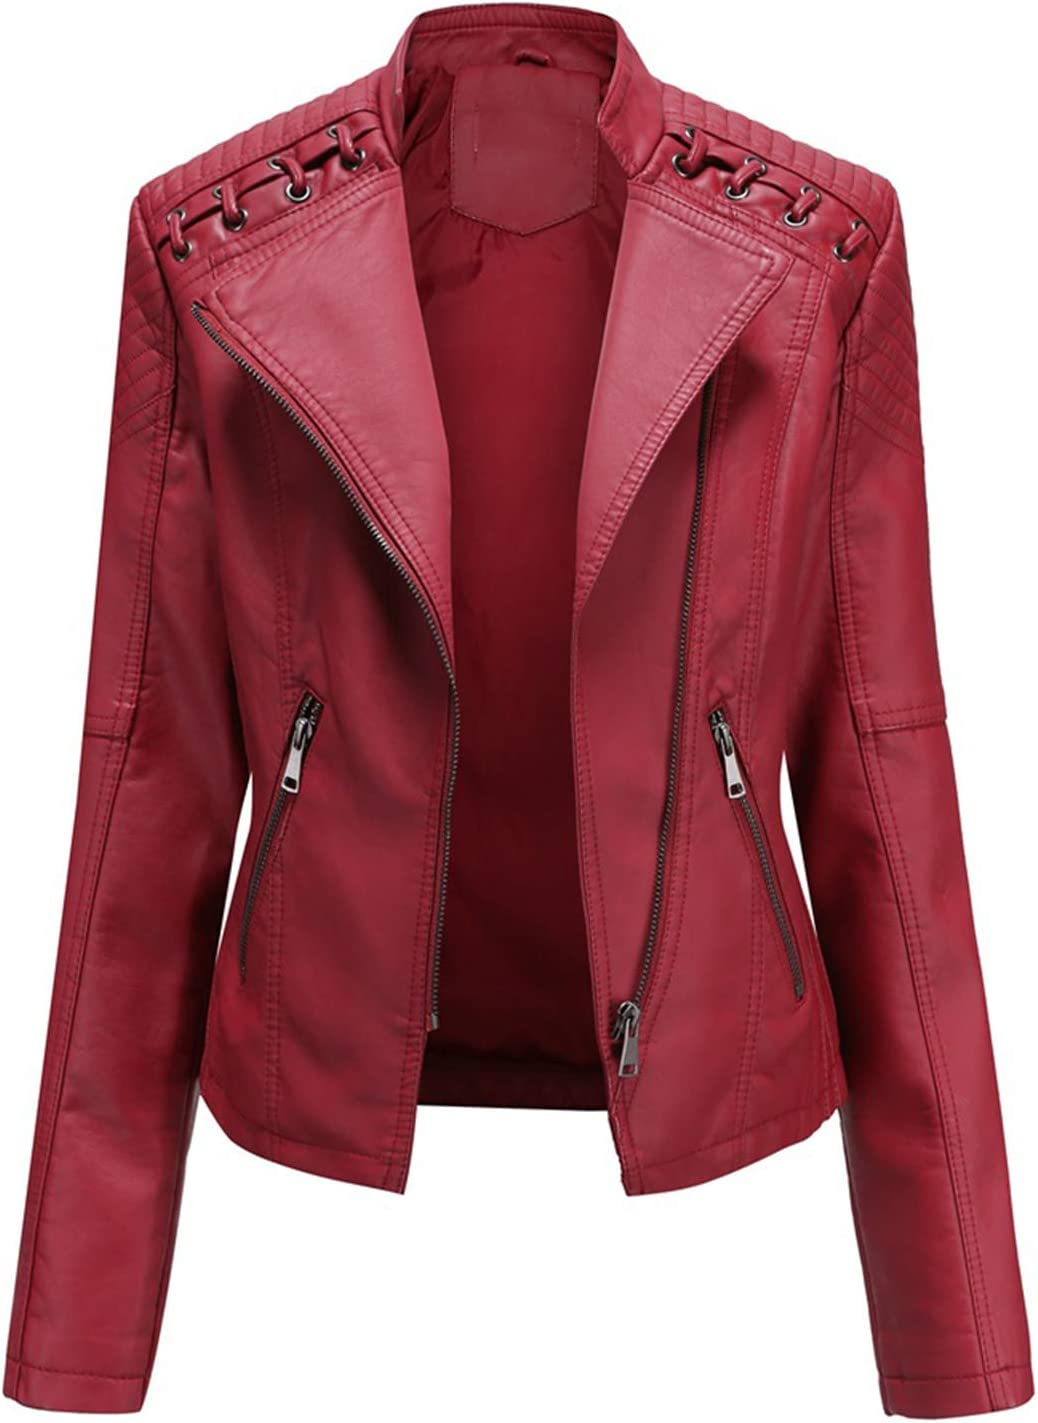 WEIXINMWP Fashion Leather Jacket Women Spring and Autumn Stand Collar Collar Motorcycle Rider Coat pu Jacket Coat high Street Jacket Street Clothing,Red,XL